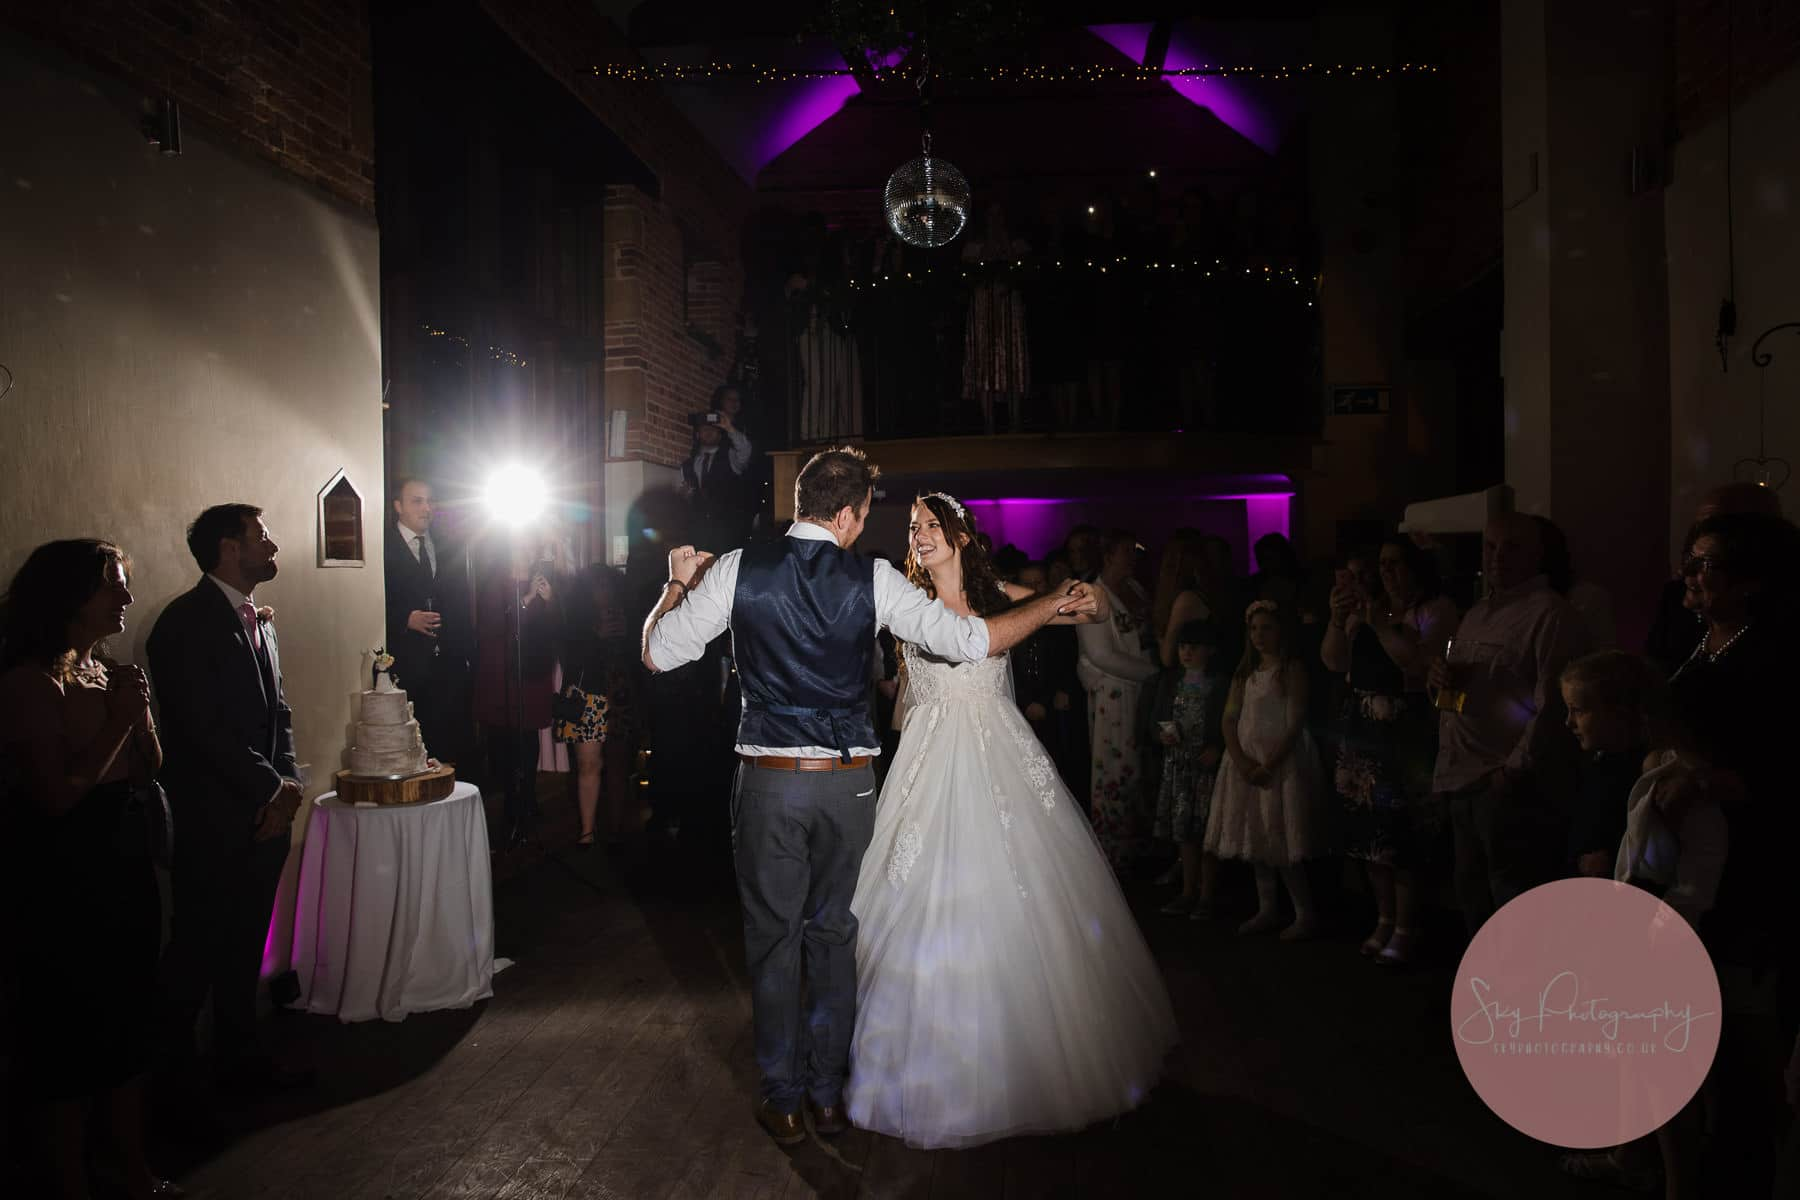 guests surrounding the couple as they perform their first dance routine at Dodmoor House